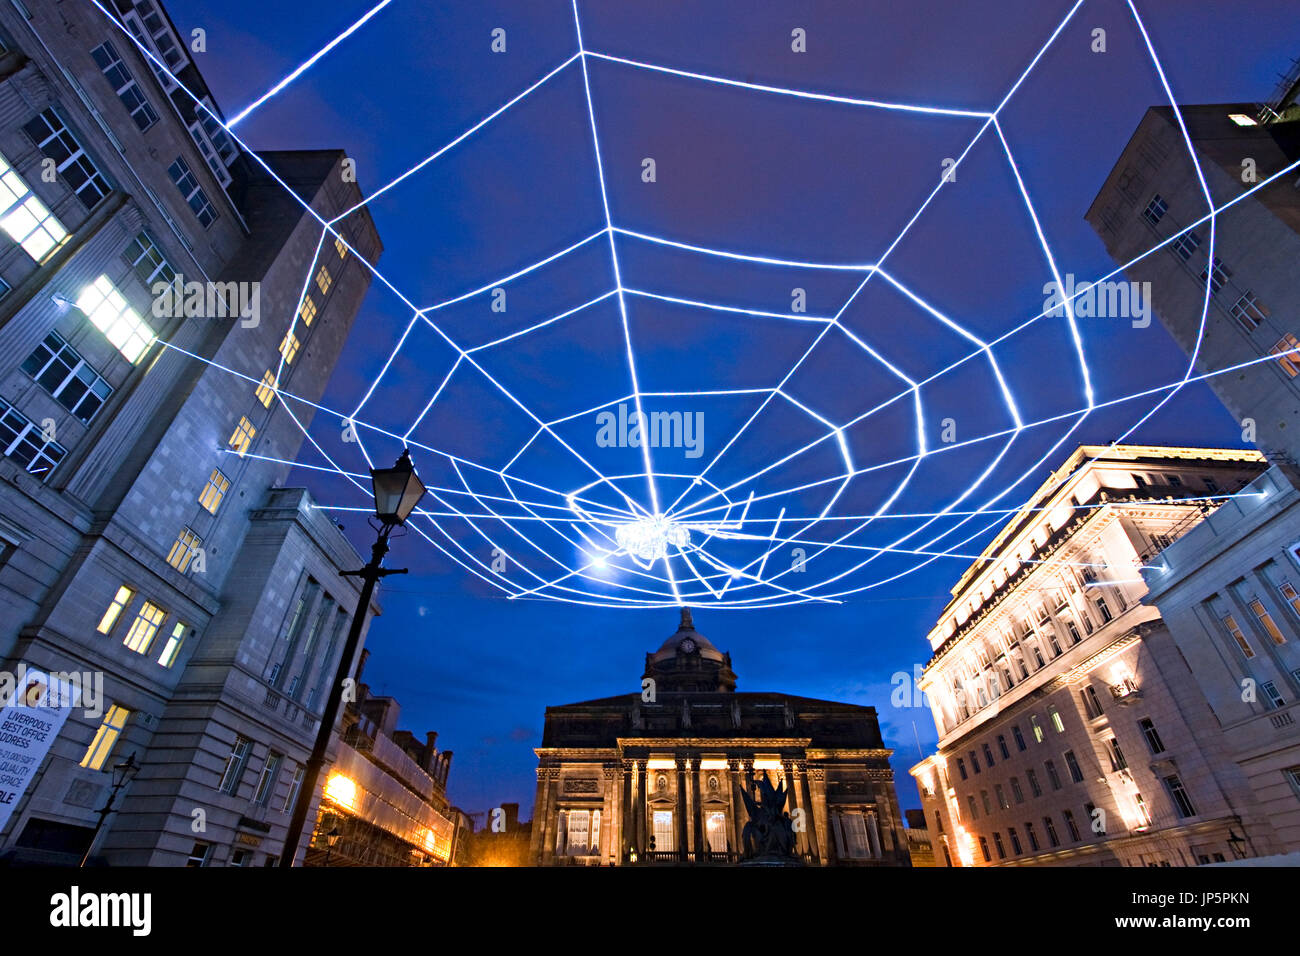 Ai Weiwei Spider lights up Exchange Flags at the rear of Liverpool Town Hall, a highlight of the Liverpool Biennial 2003. - Stock Image